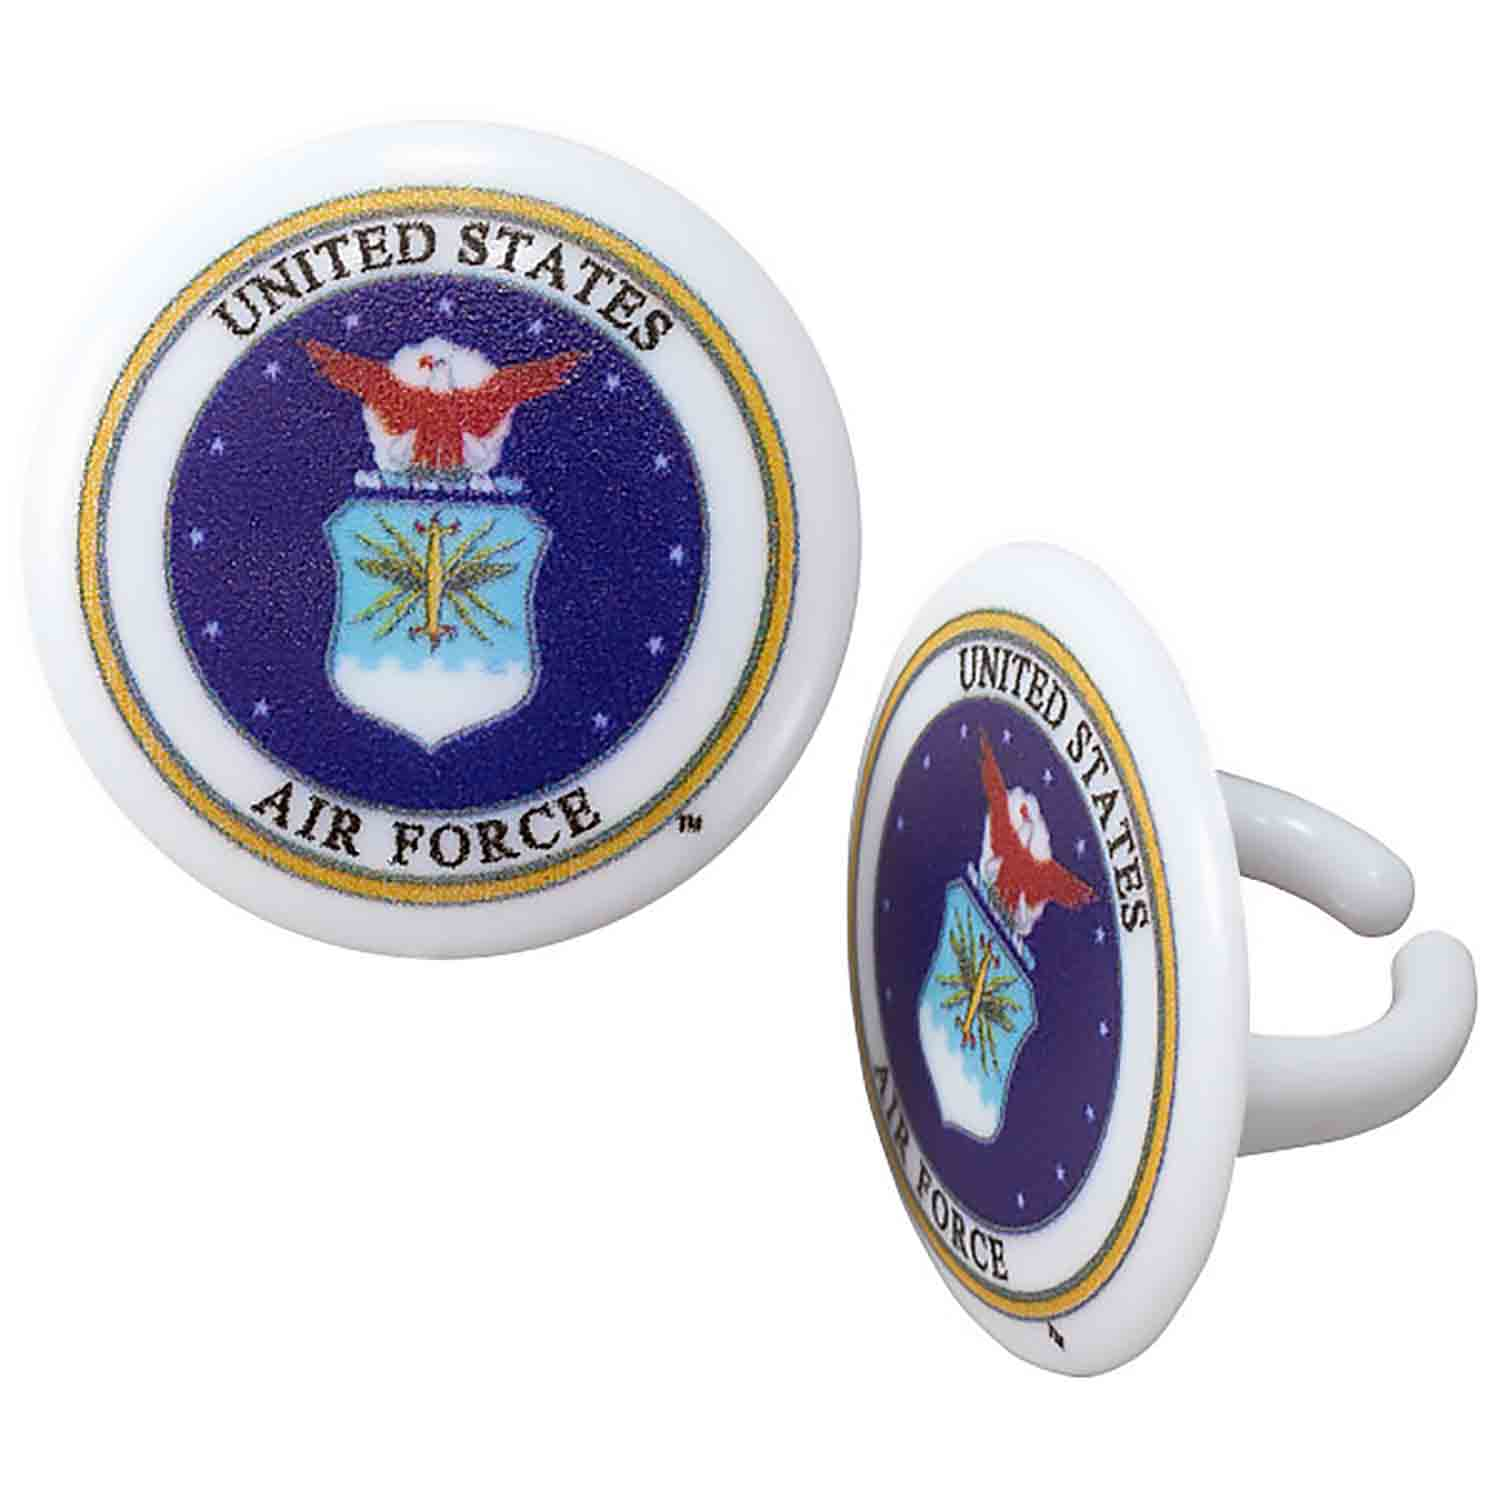 United States Air Force Rings